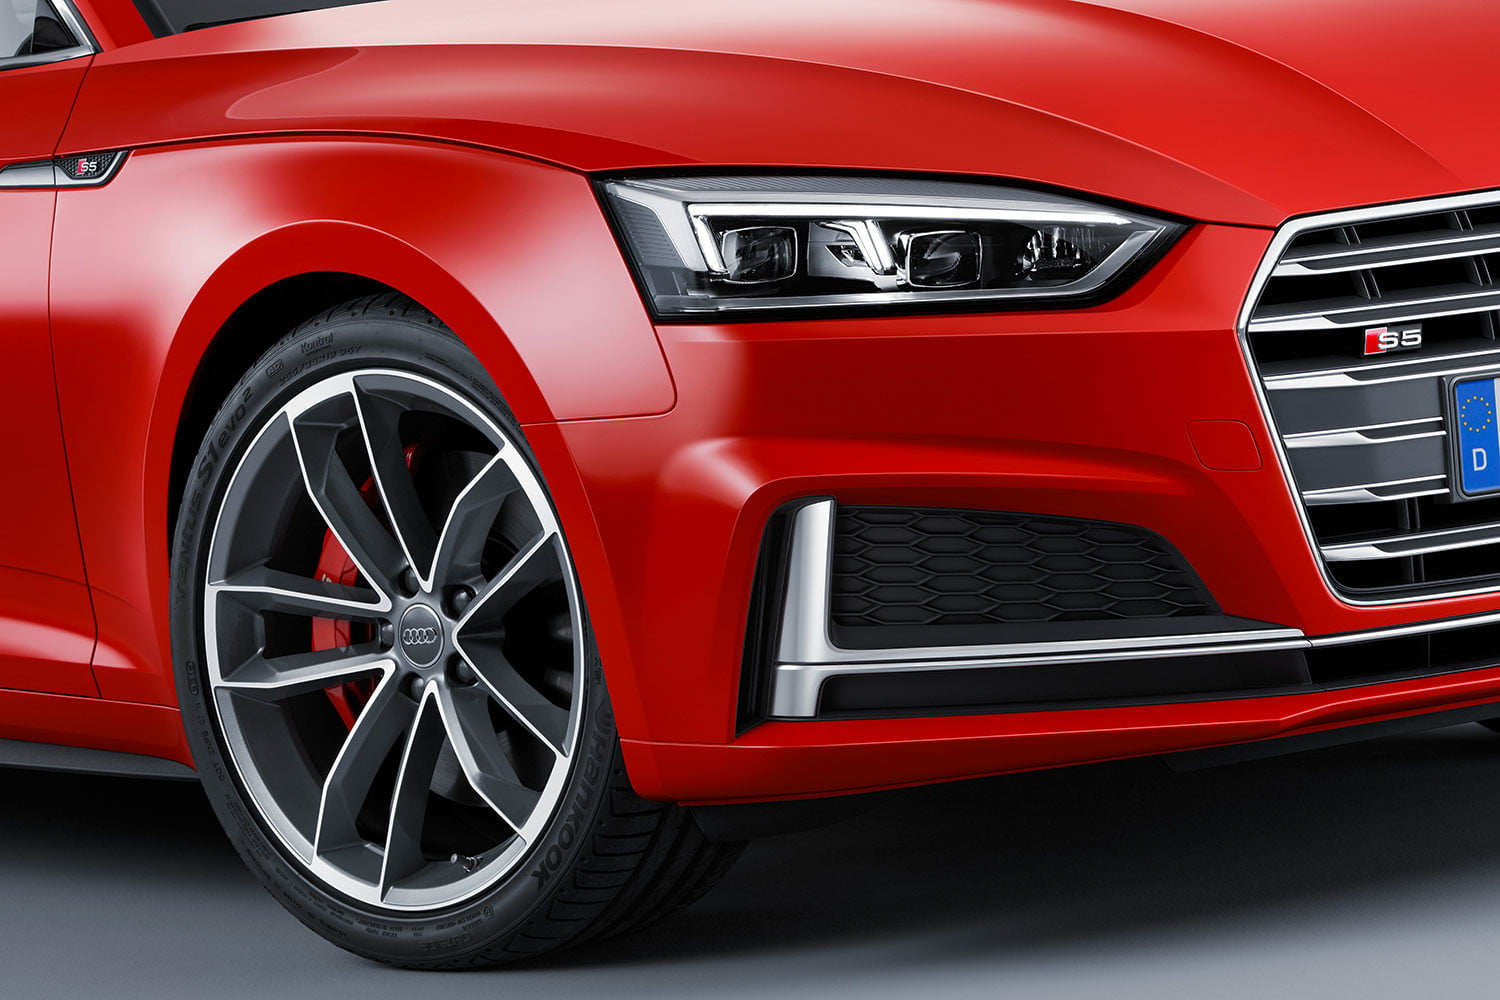 2017 audi a5 news pictures specs performance s5 coupe 0020